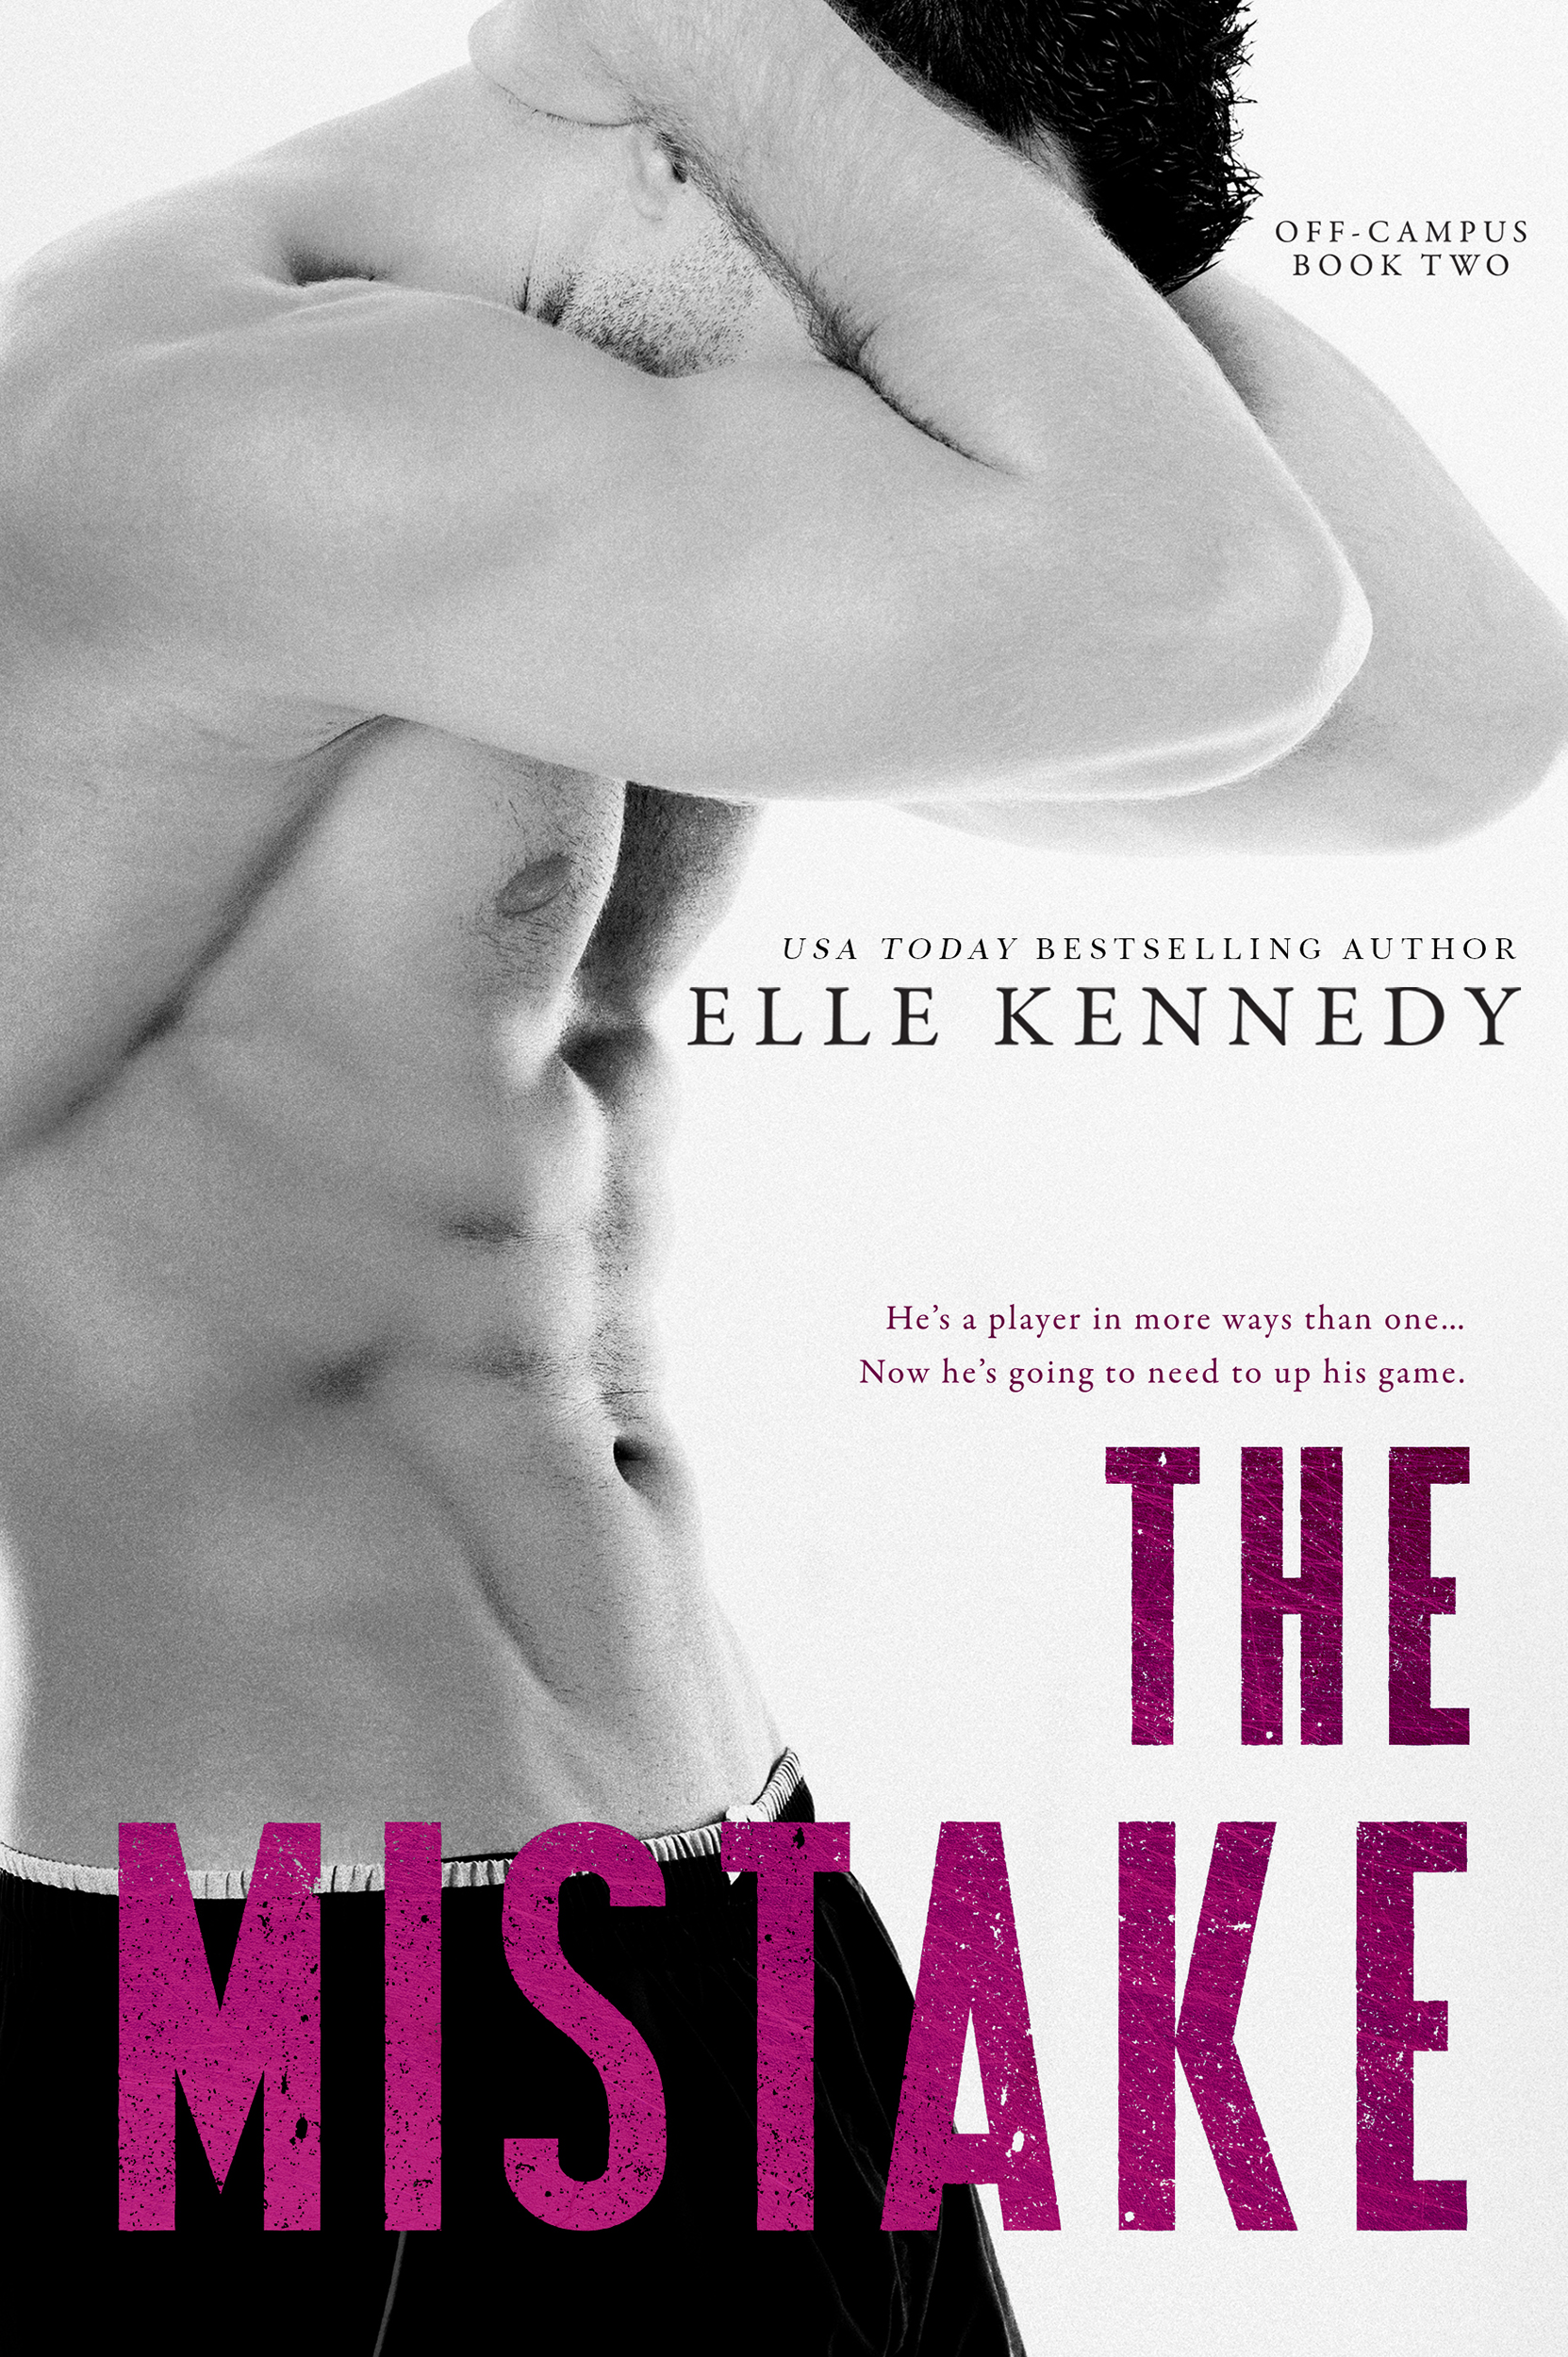 In Review: The Mistake (Off-Campus #2) by Elle Kennedy